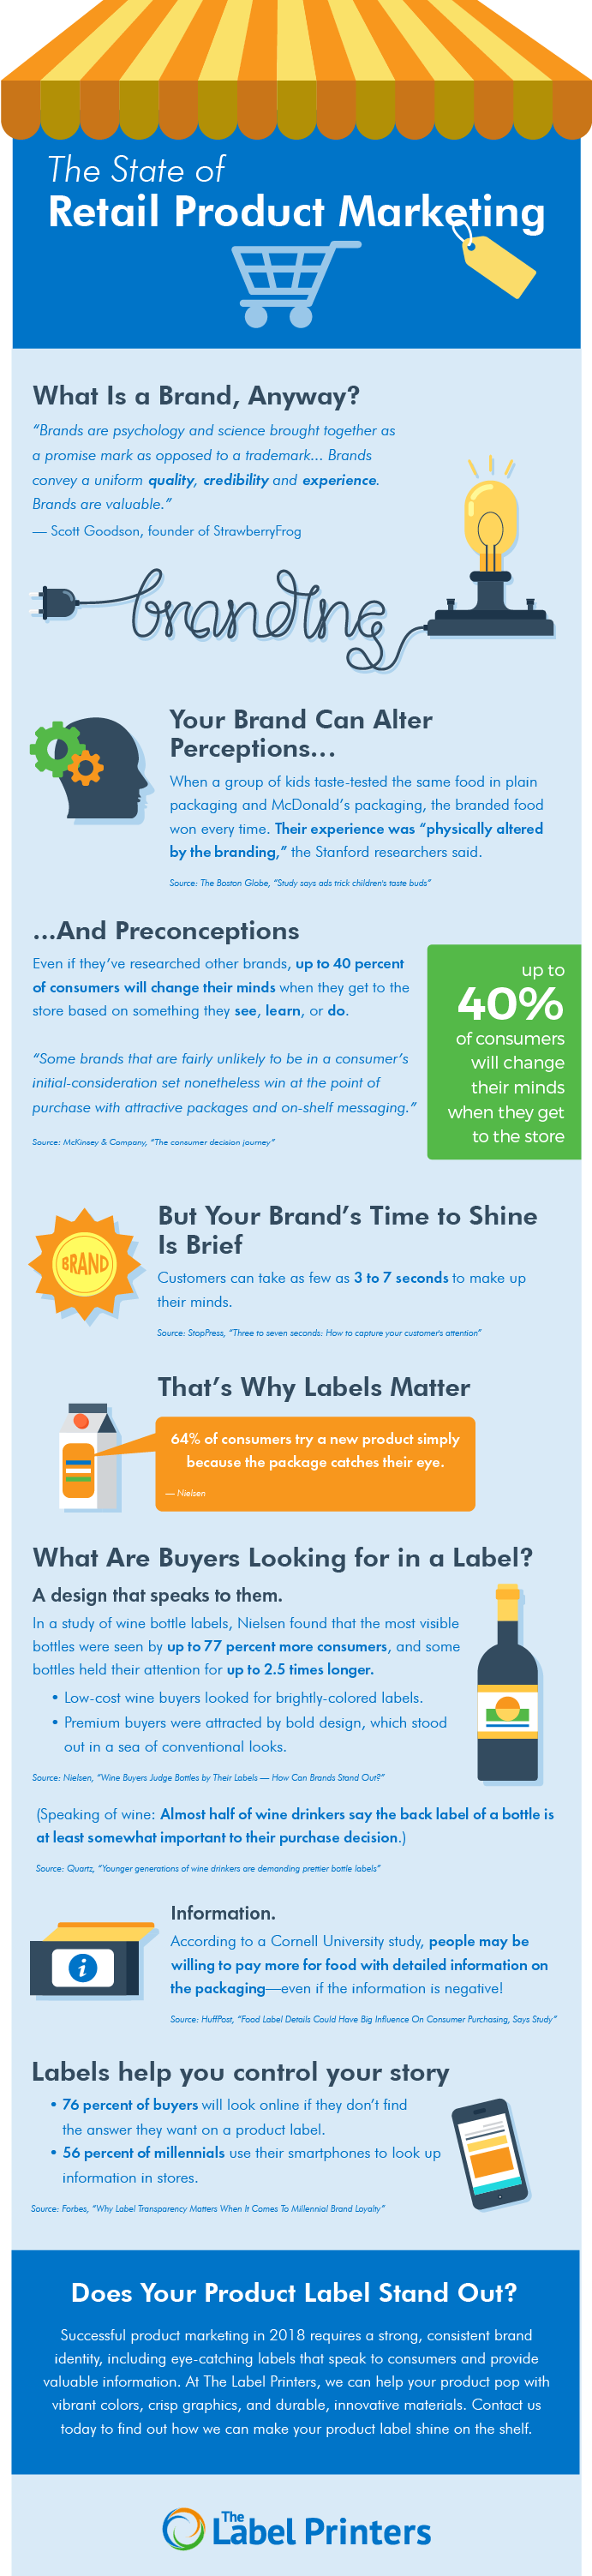 The State of Retail Product Marketing